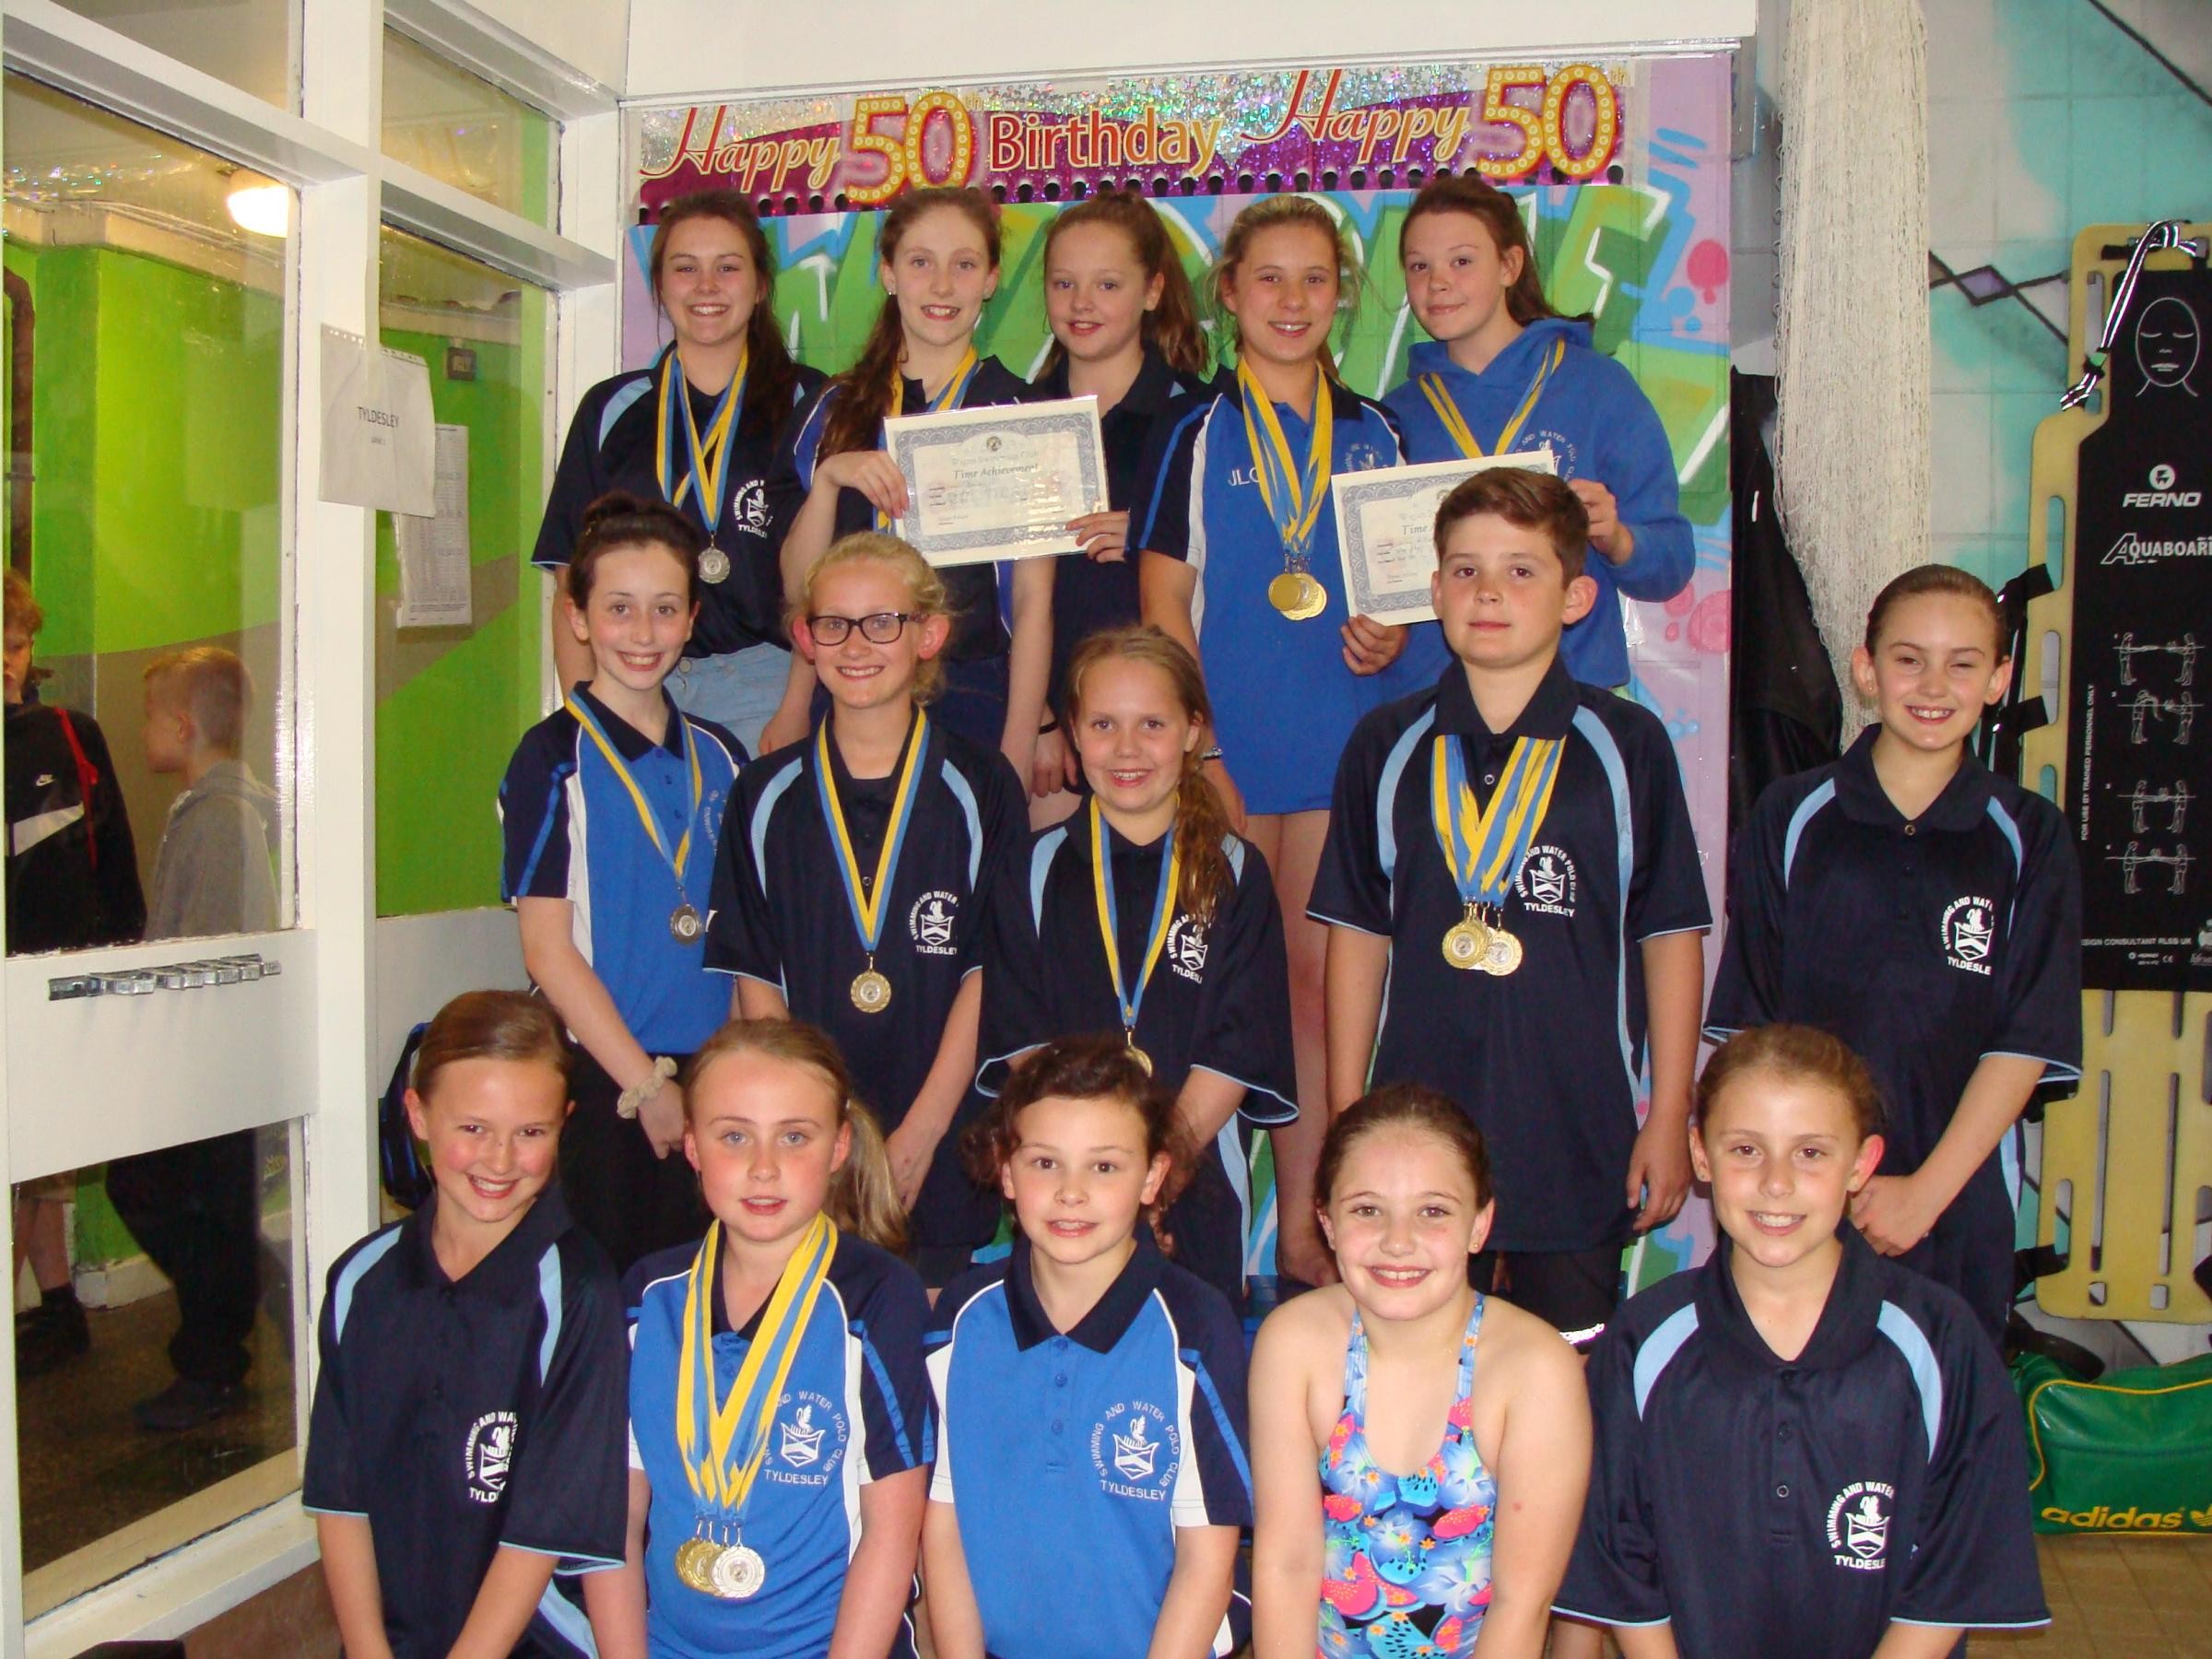 Tyldesley swimmers enjoy golden day